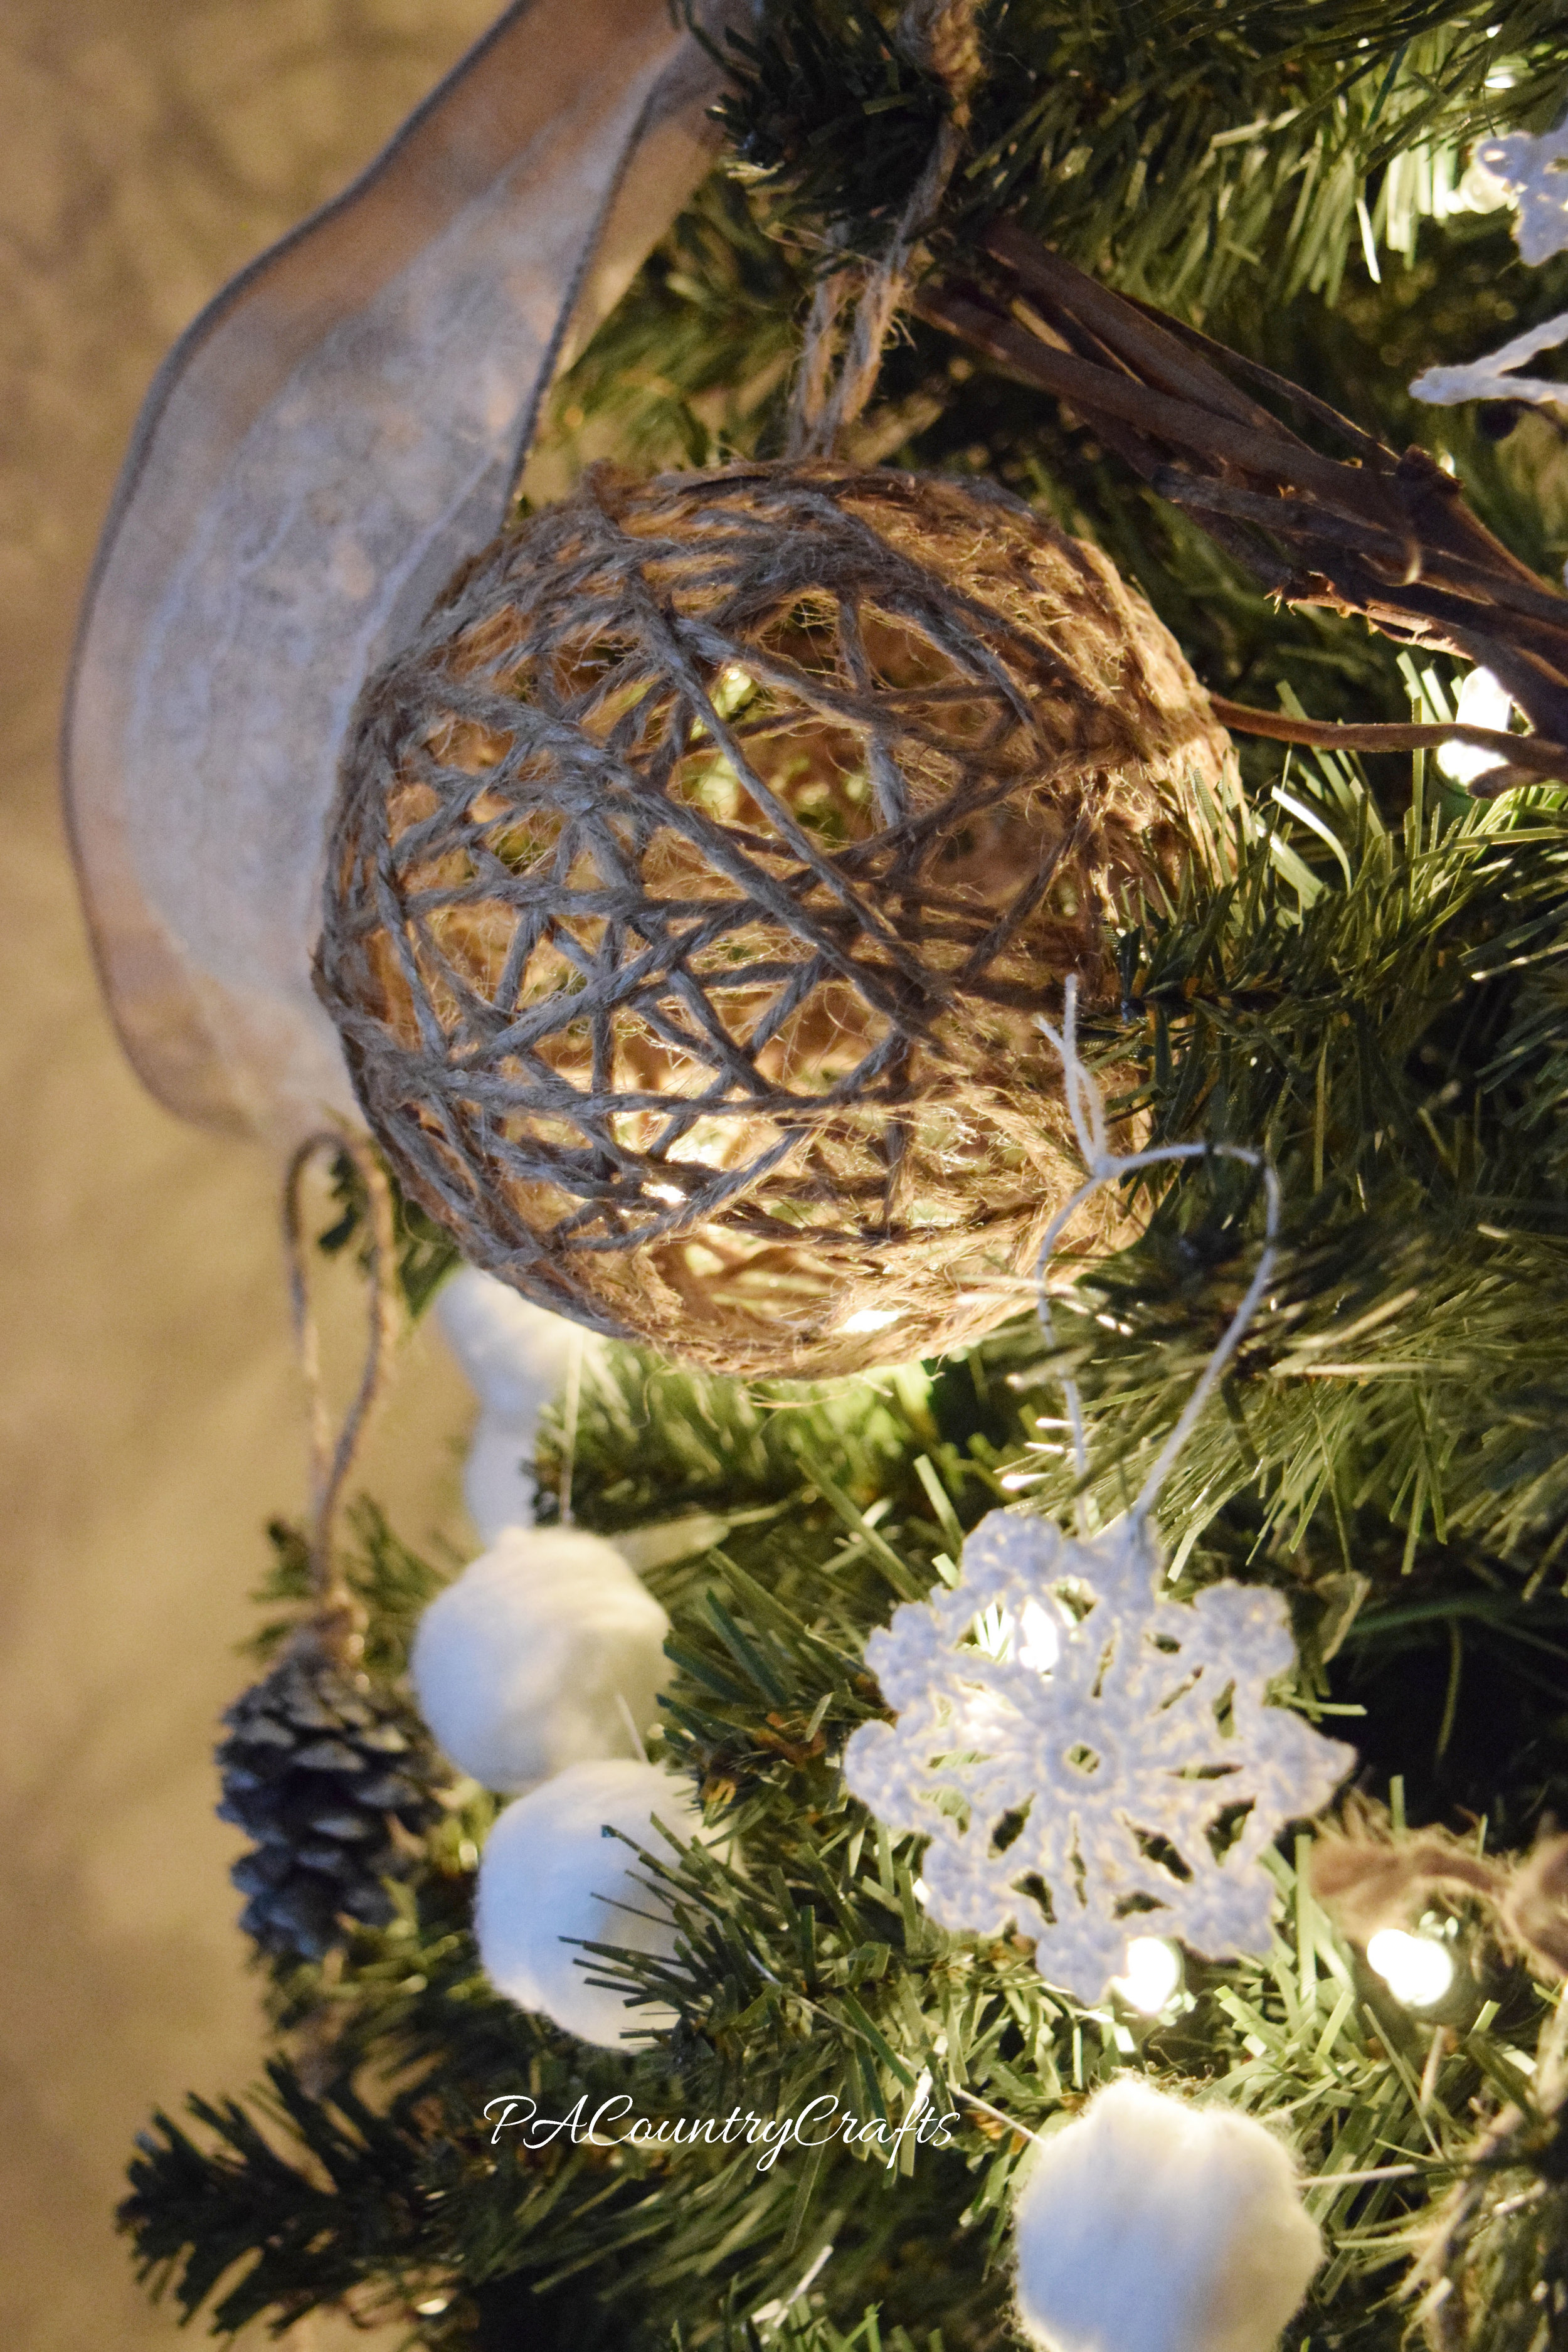 Easy to make twine ball ornaments...